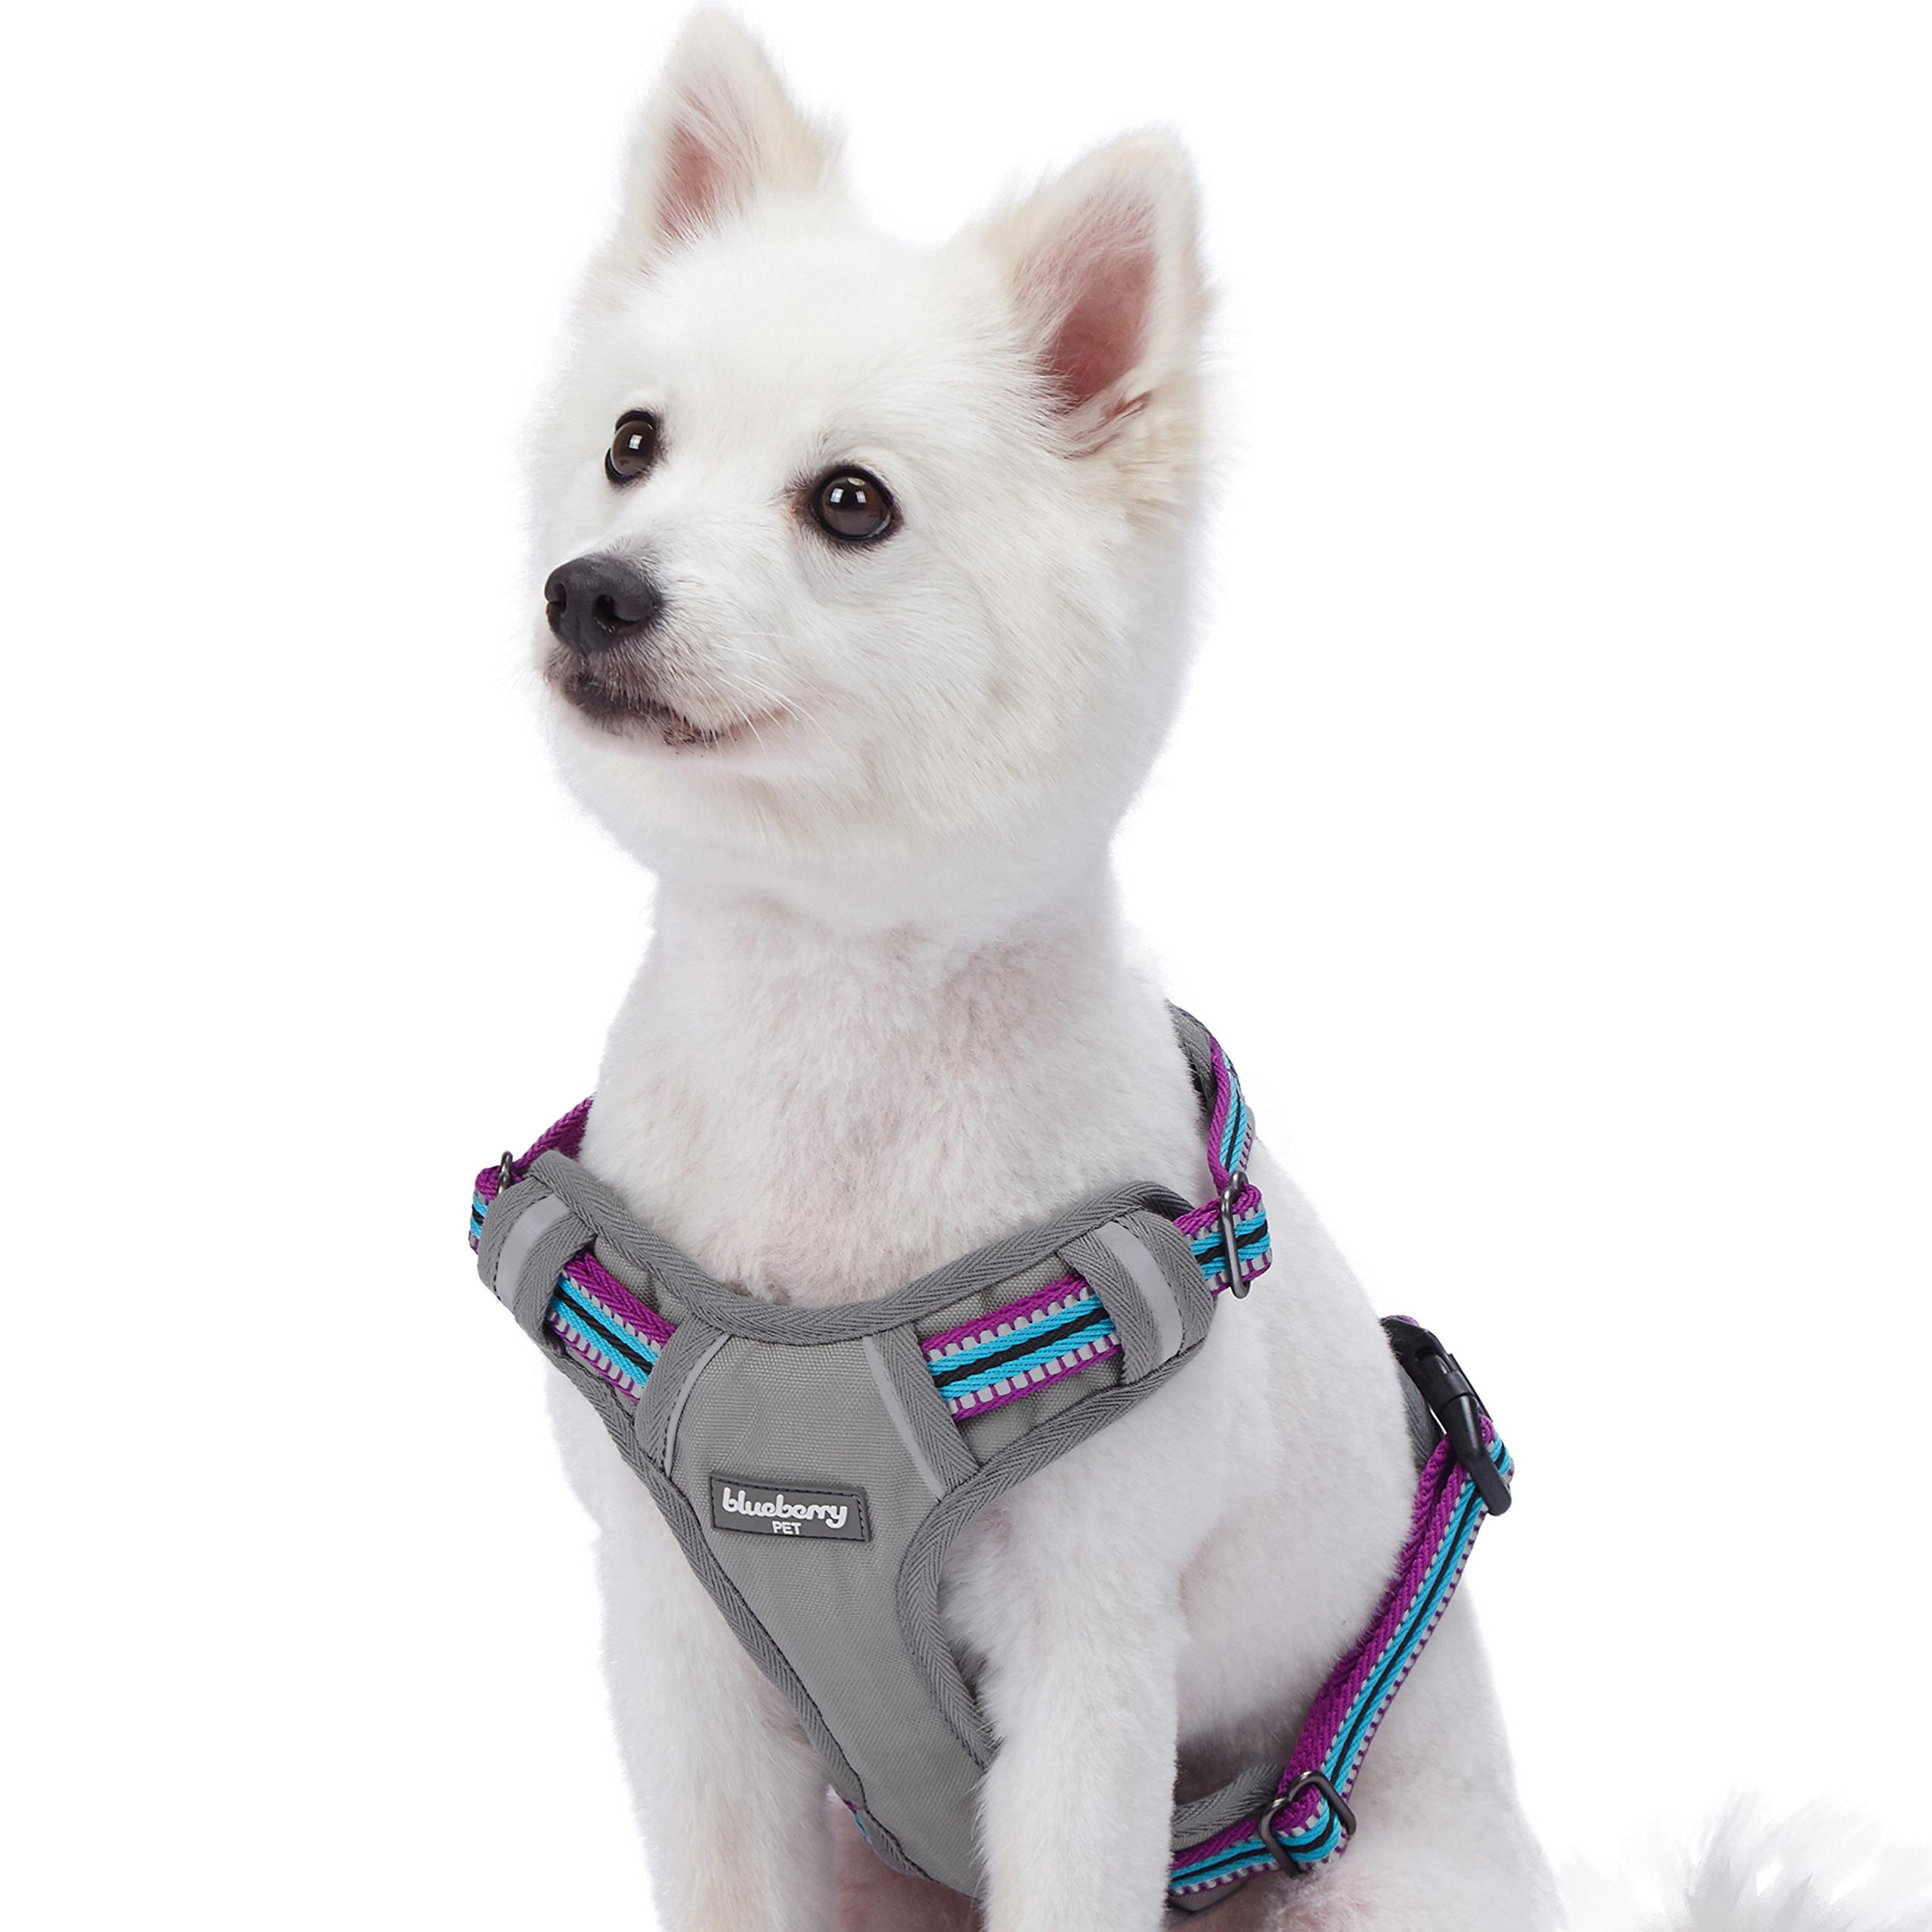 Blueberry Pet 9 Colors Soft & Comfy 3M Reflective Multi-Colored Stripe Padded Dog Harness Vest, Chest Girth 17.5''-21'', Neck 14.5''-20.5'', Violet & Celeste, Small, Mesh Harnesses for Dogs